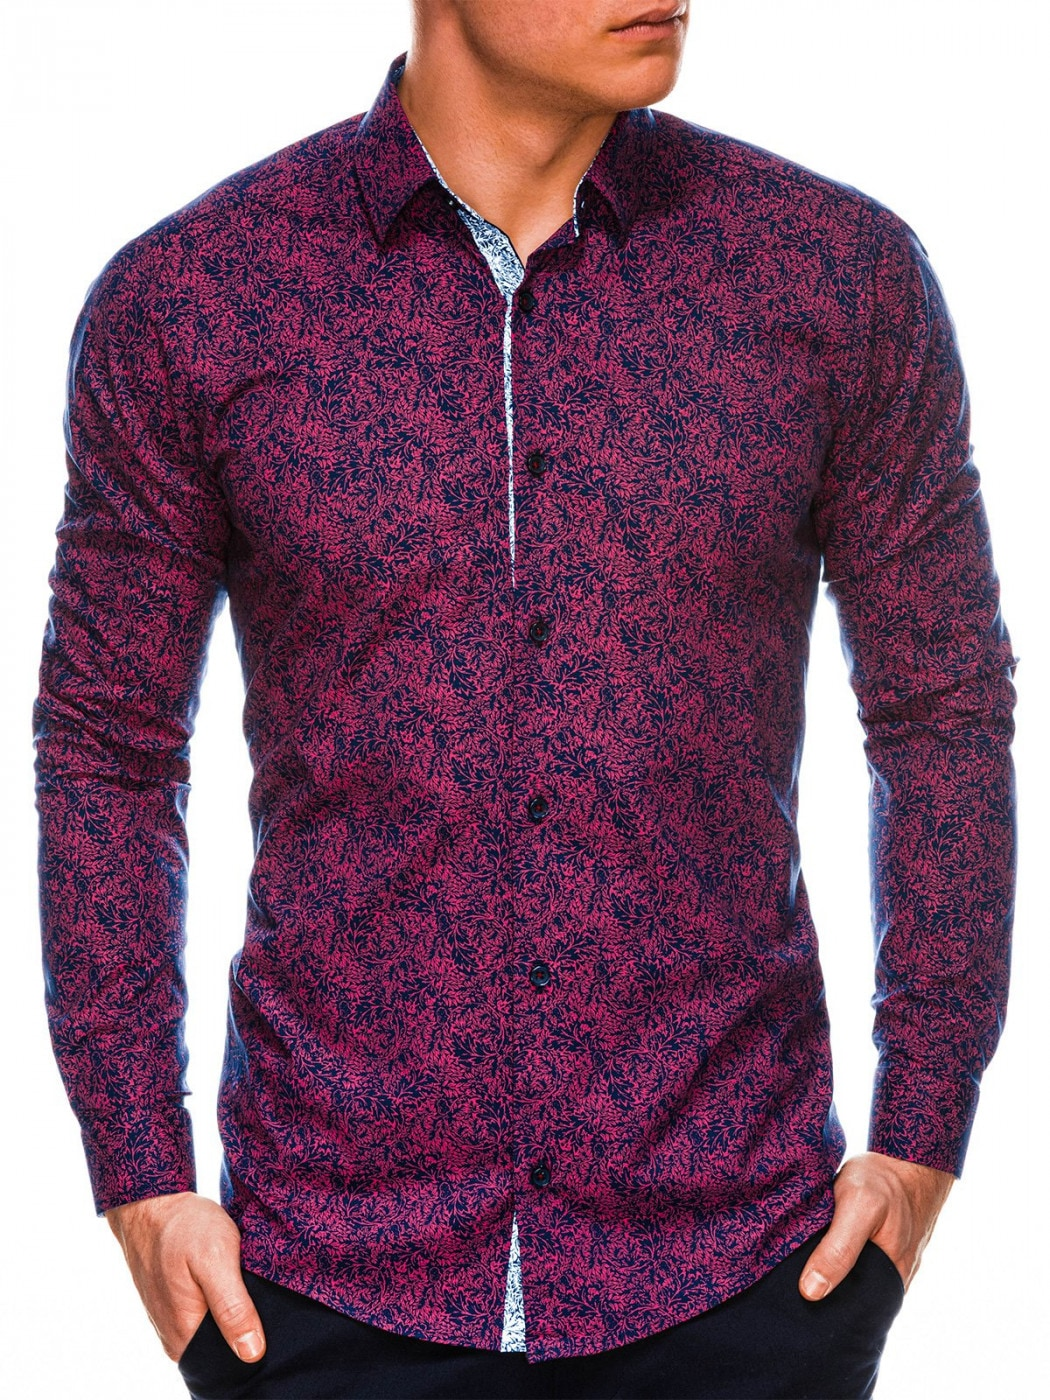 Ombre Clothing Men's long sleeve shirt K530